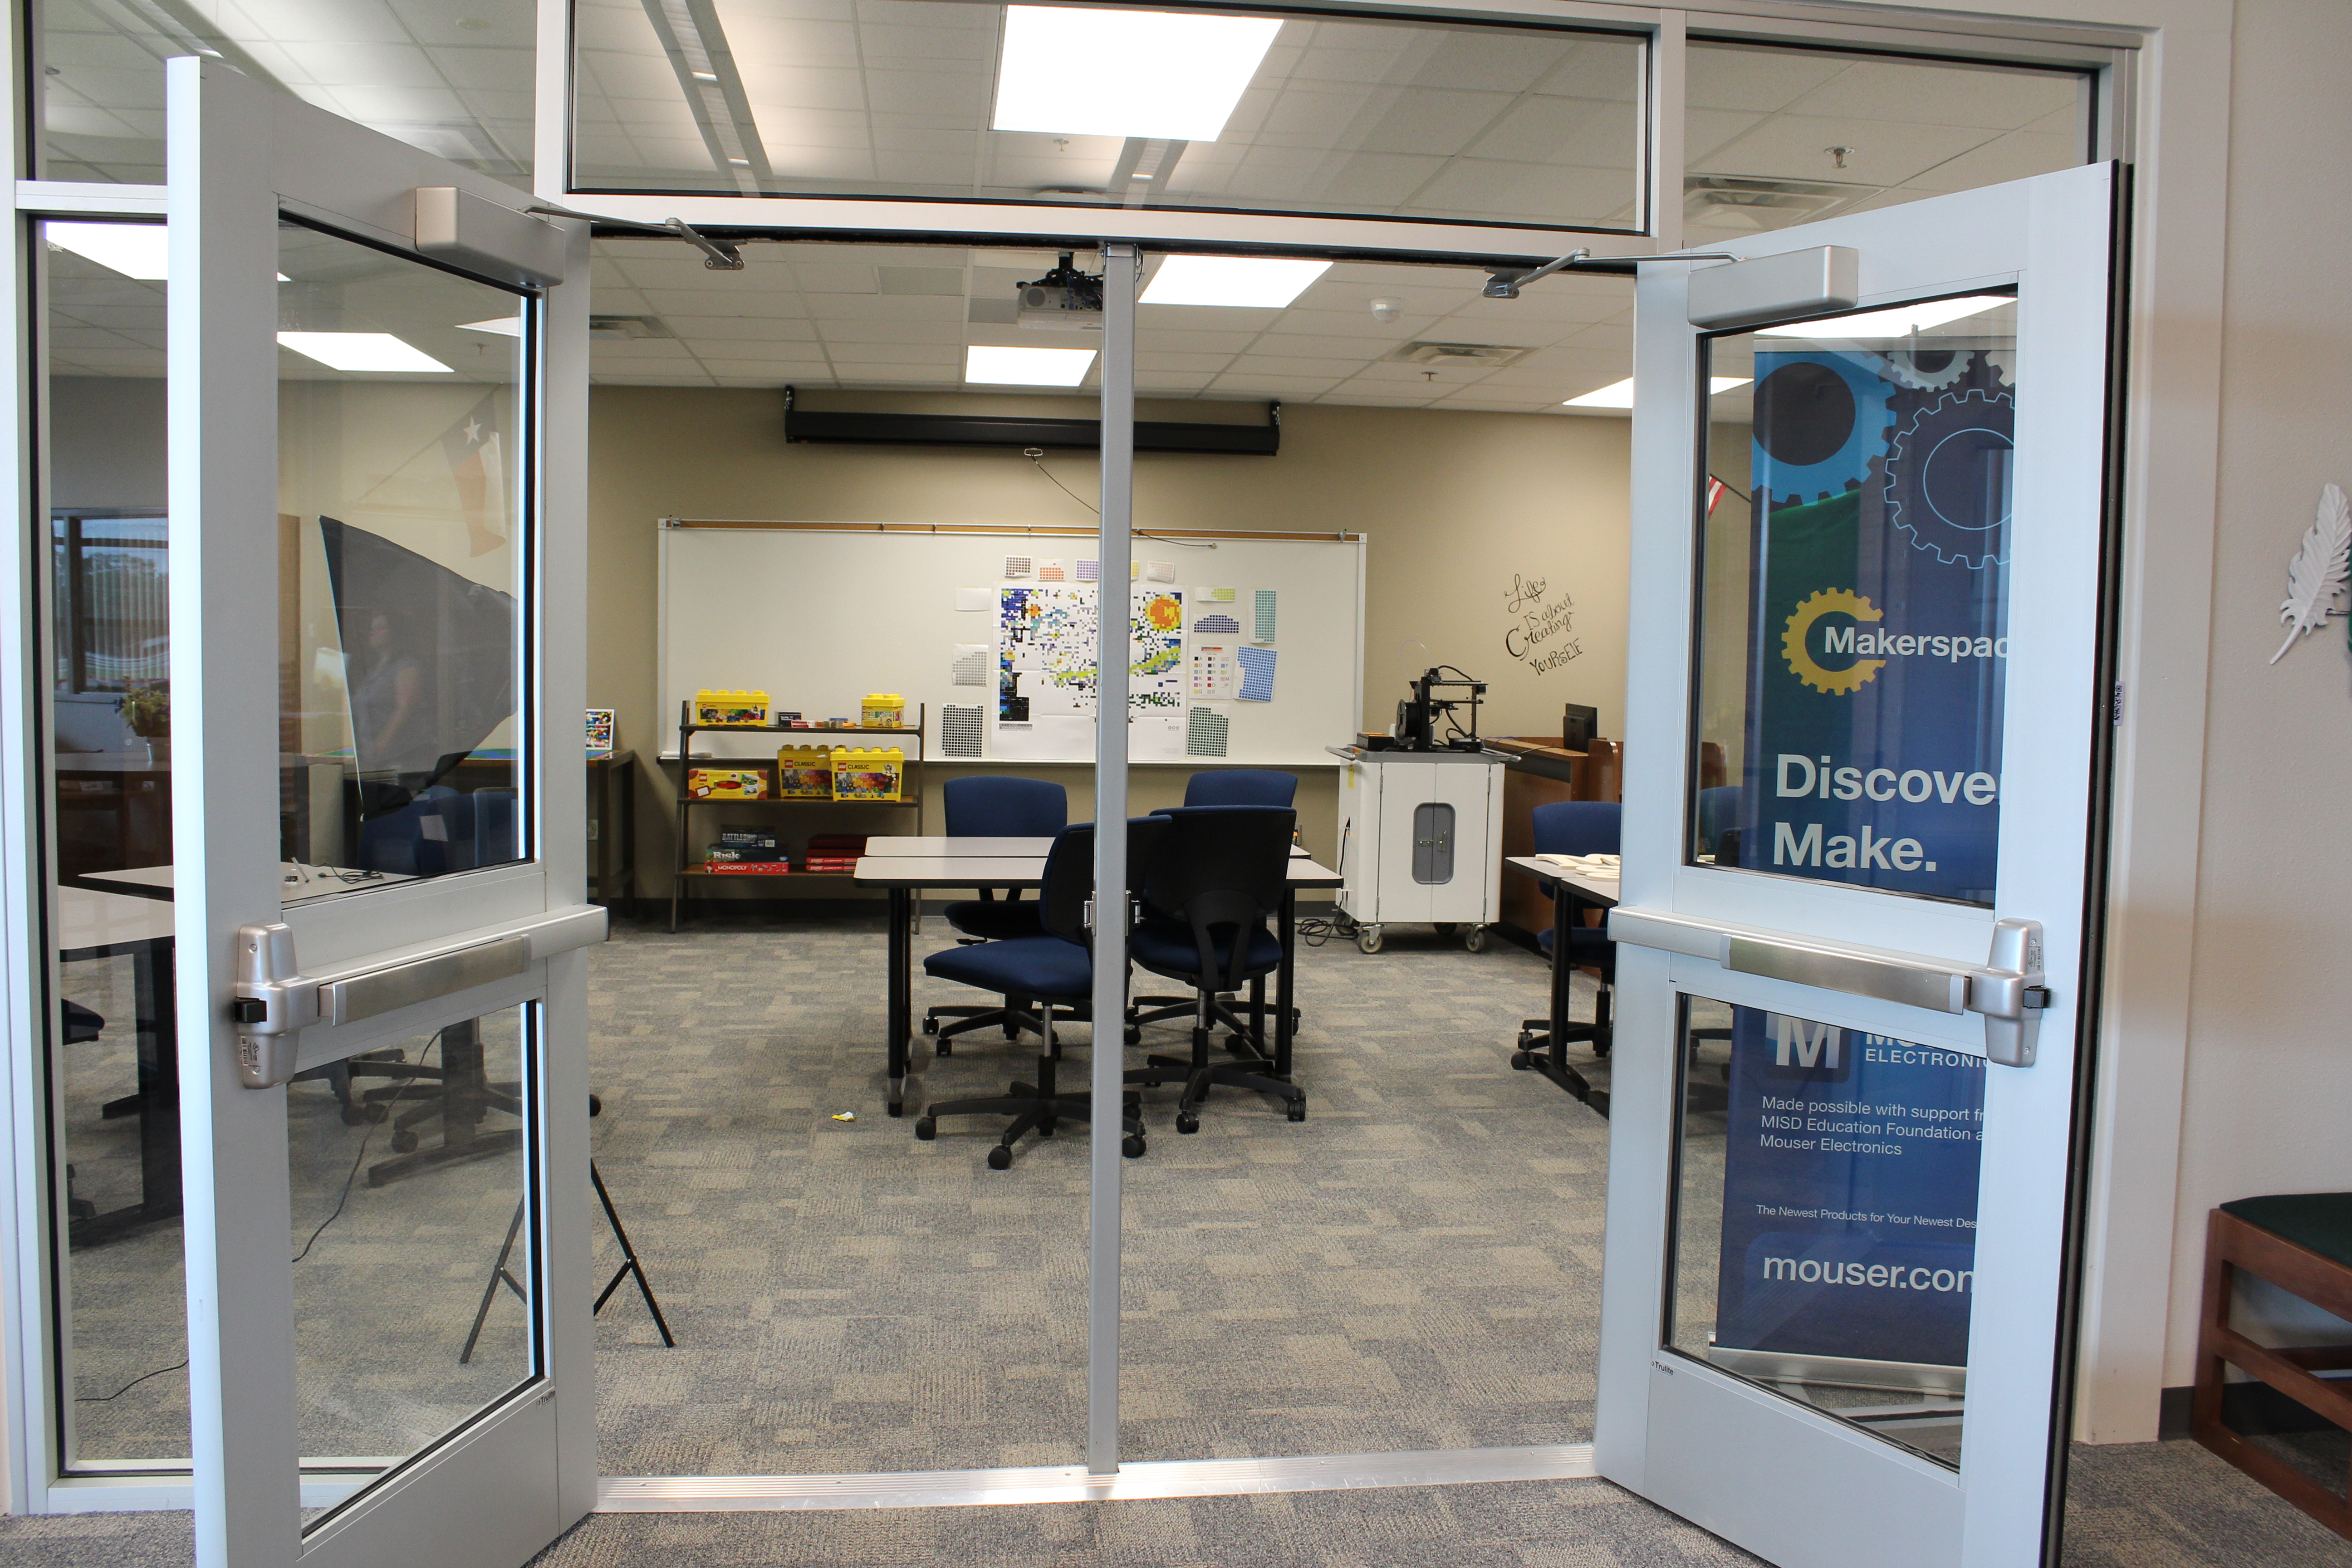 The Maker Space hopes to encourage student's creativity outside the classroom.